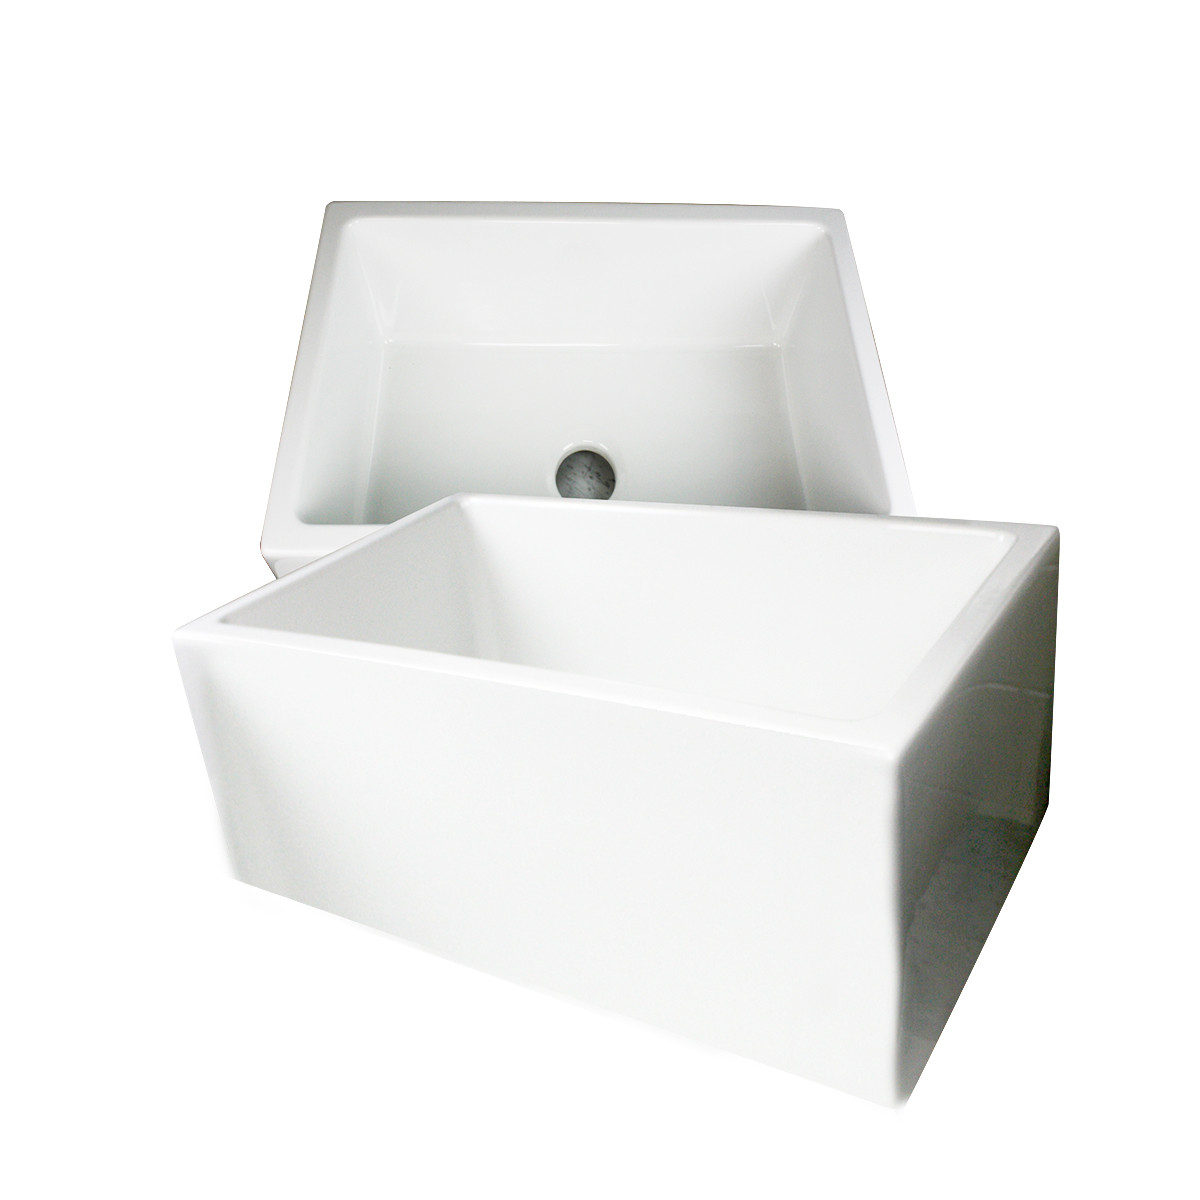 Nantucket Sink Hyannis-24 White Rectangular Fireclay Farmhouse Apron Sink